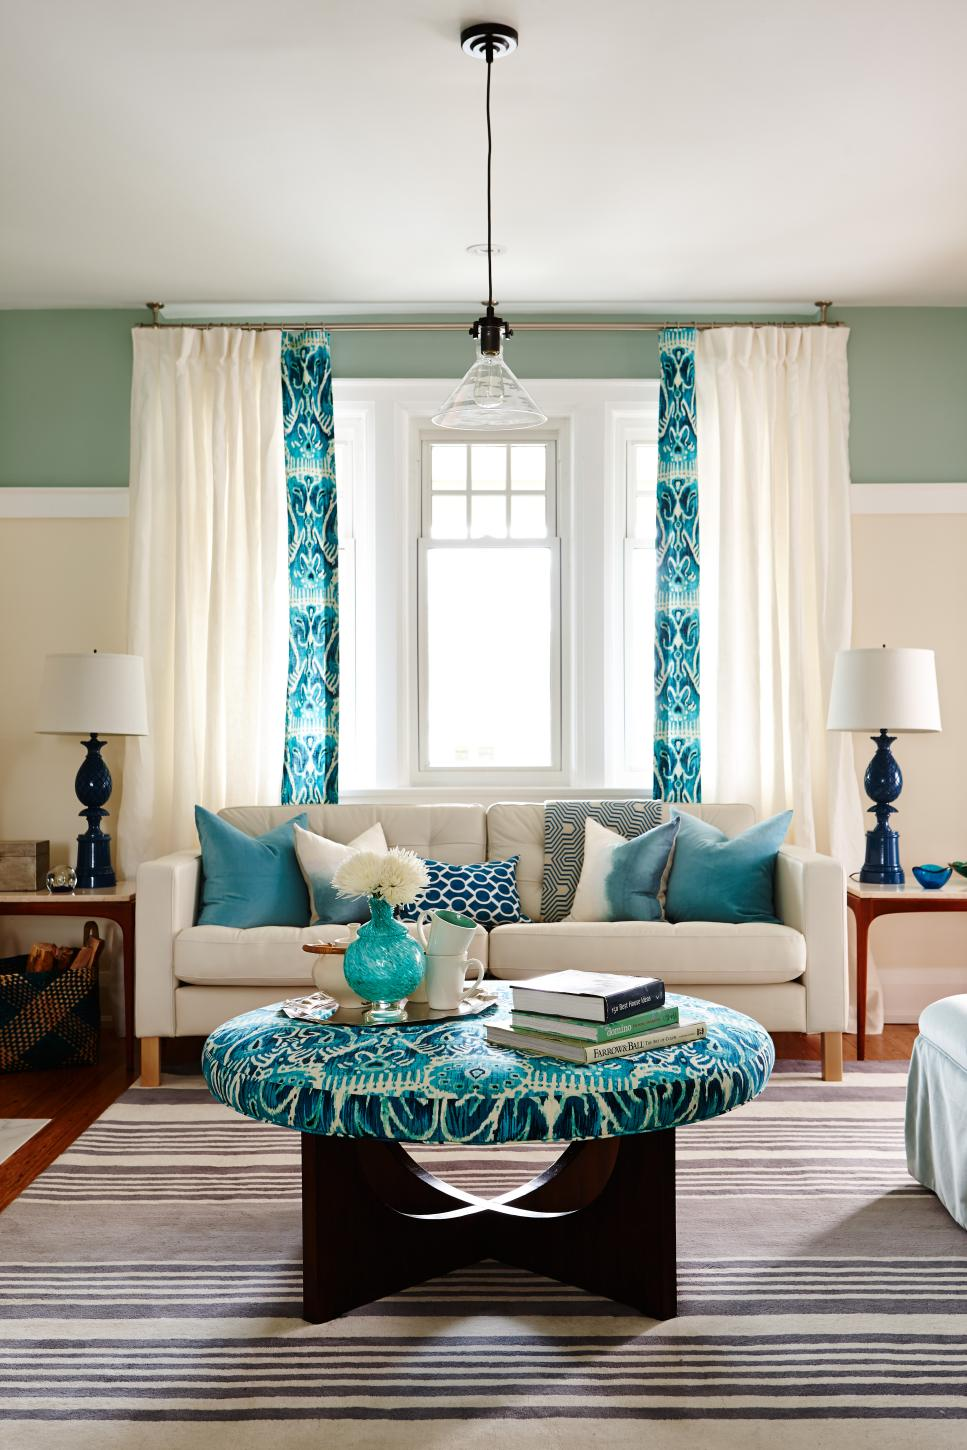 Living Room Ideas   38 Decorating Tips To Improve The Appearance Of Your  Living Area | Hawk Haven Part 77